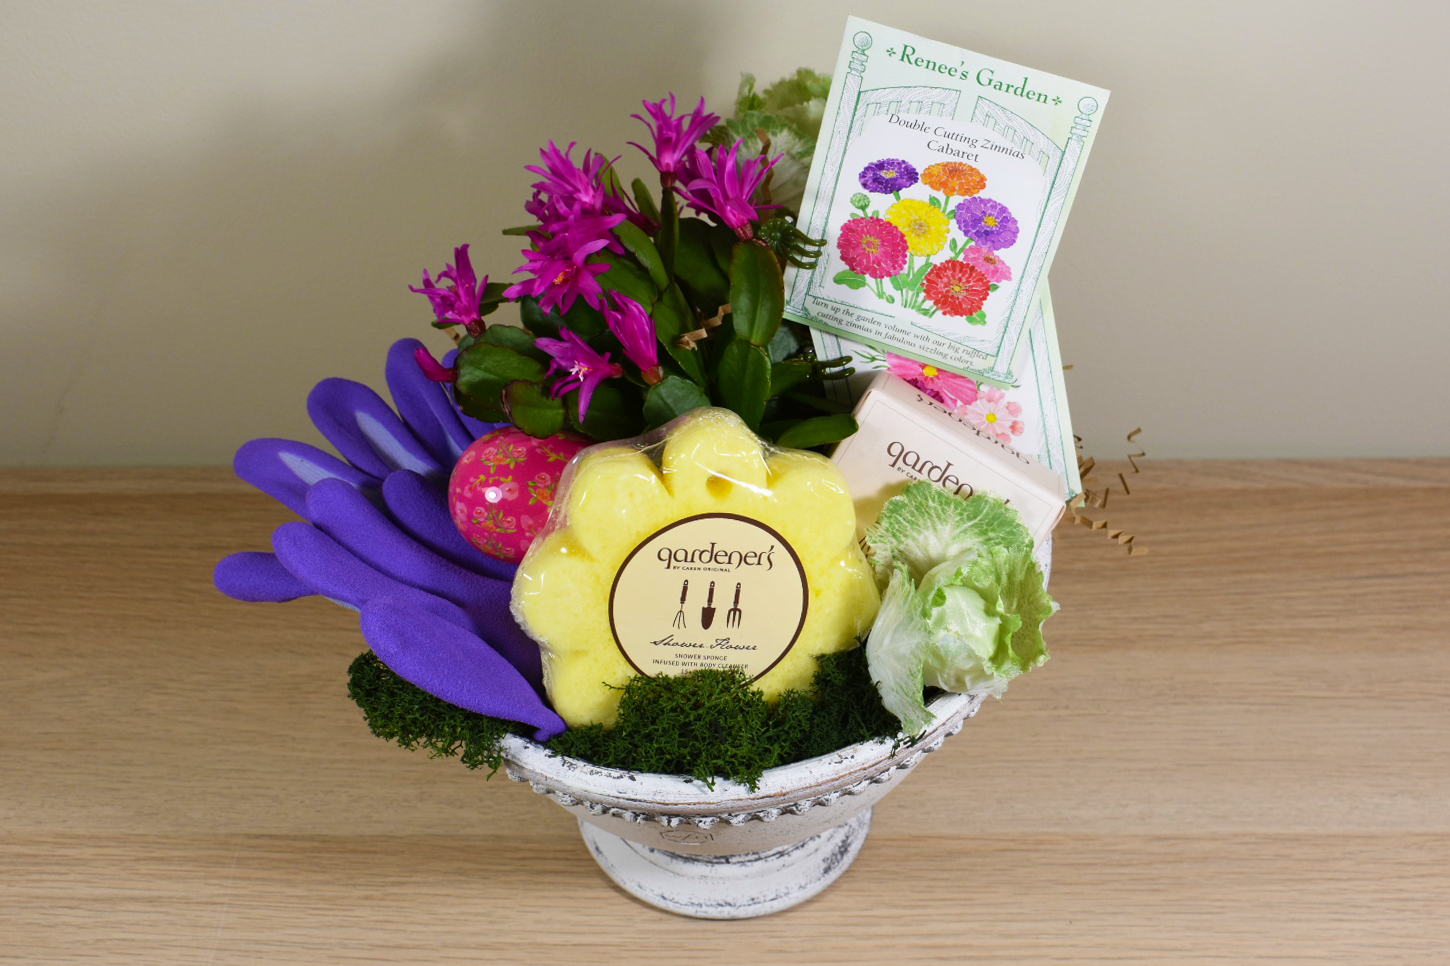 Stepping outside of the basket easter gift giving chalet nursery a curated collection of bright and colorful plants seeds gloves and tasty treats is sure to result in two green thumbs up negle Choice Image